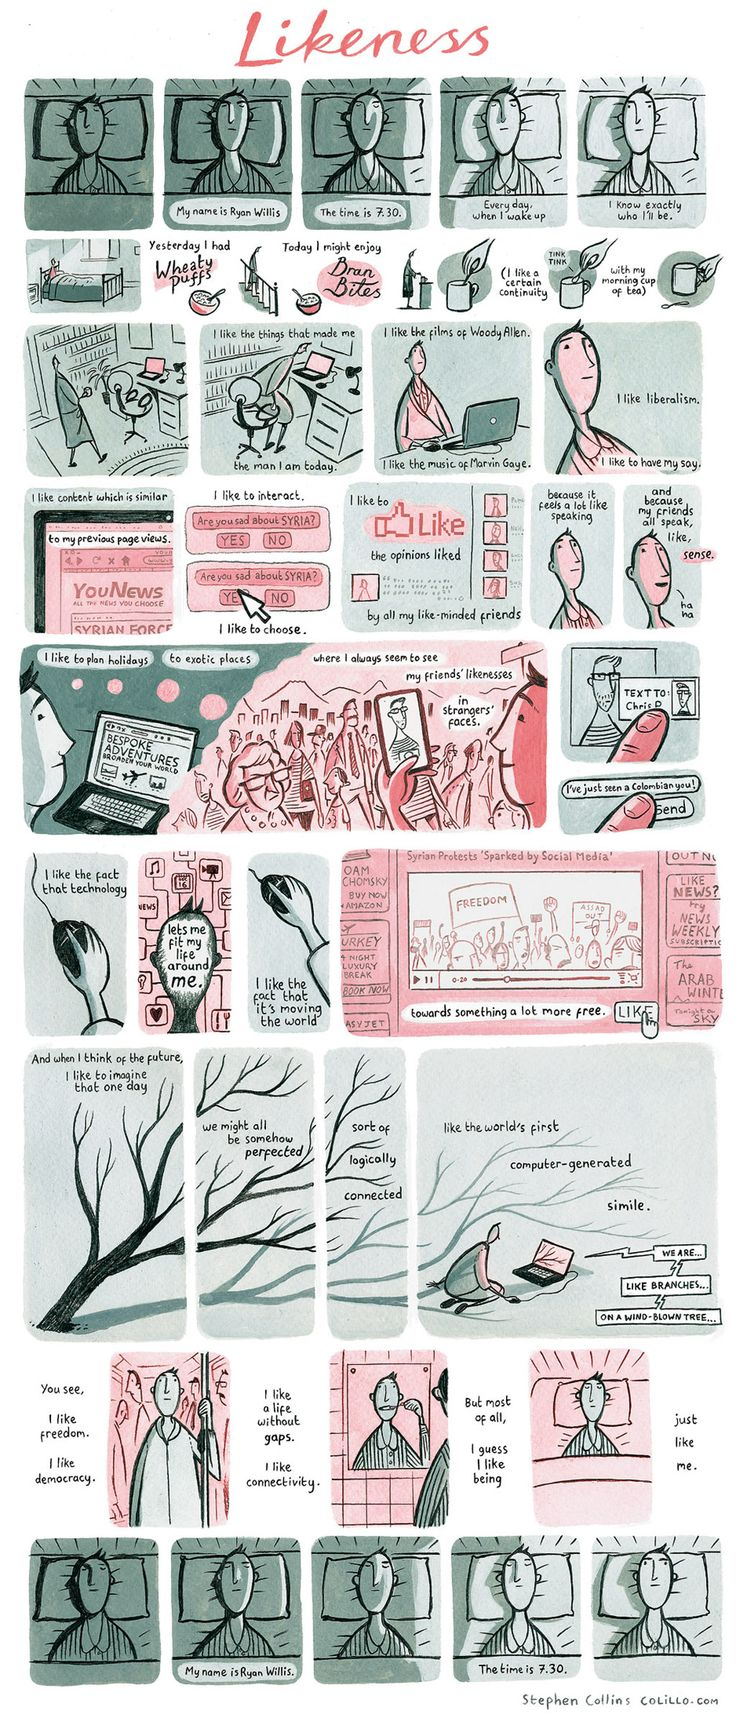 Stephen Collins's comic in The Guardian is a really poignant piece on our times.  The art style is great and the literary prose is very moving.  Highly suggested.